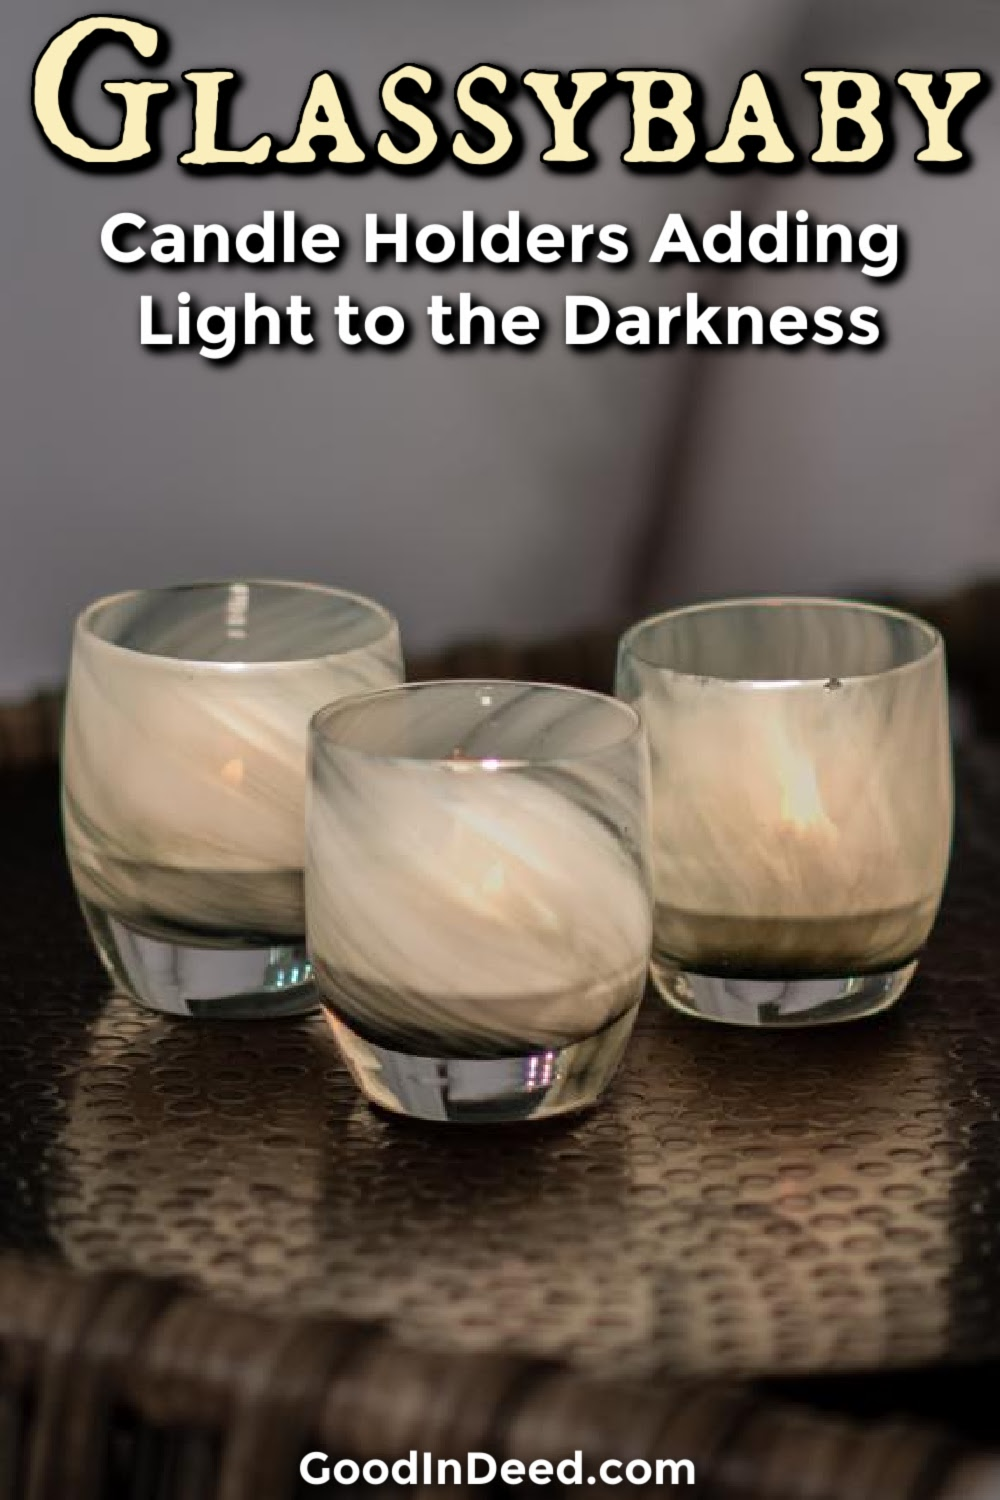 Glassybaby makes some stunning votive holders that help spread the light of a candle so others can find their way in the darkness.